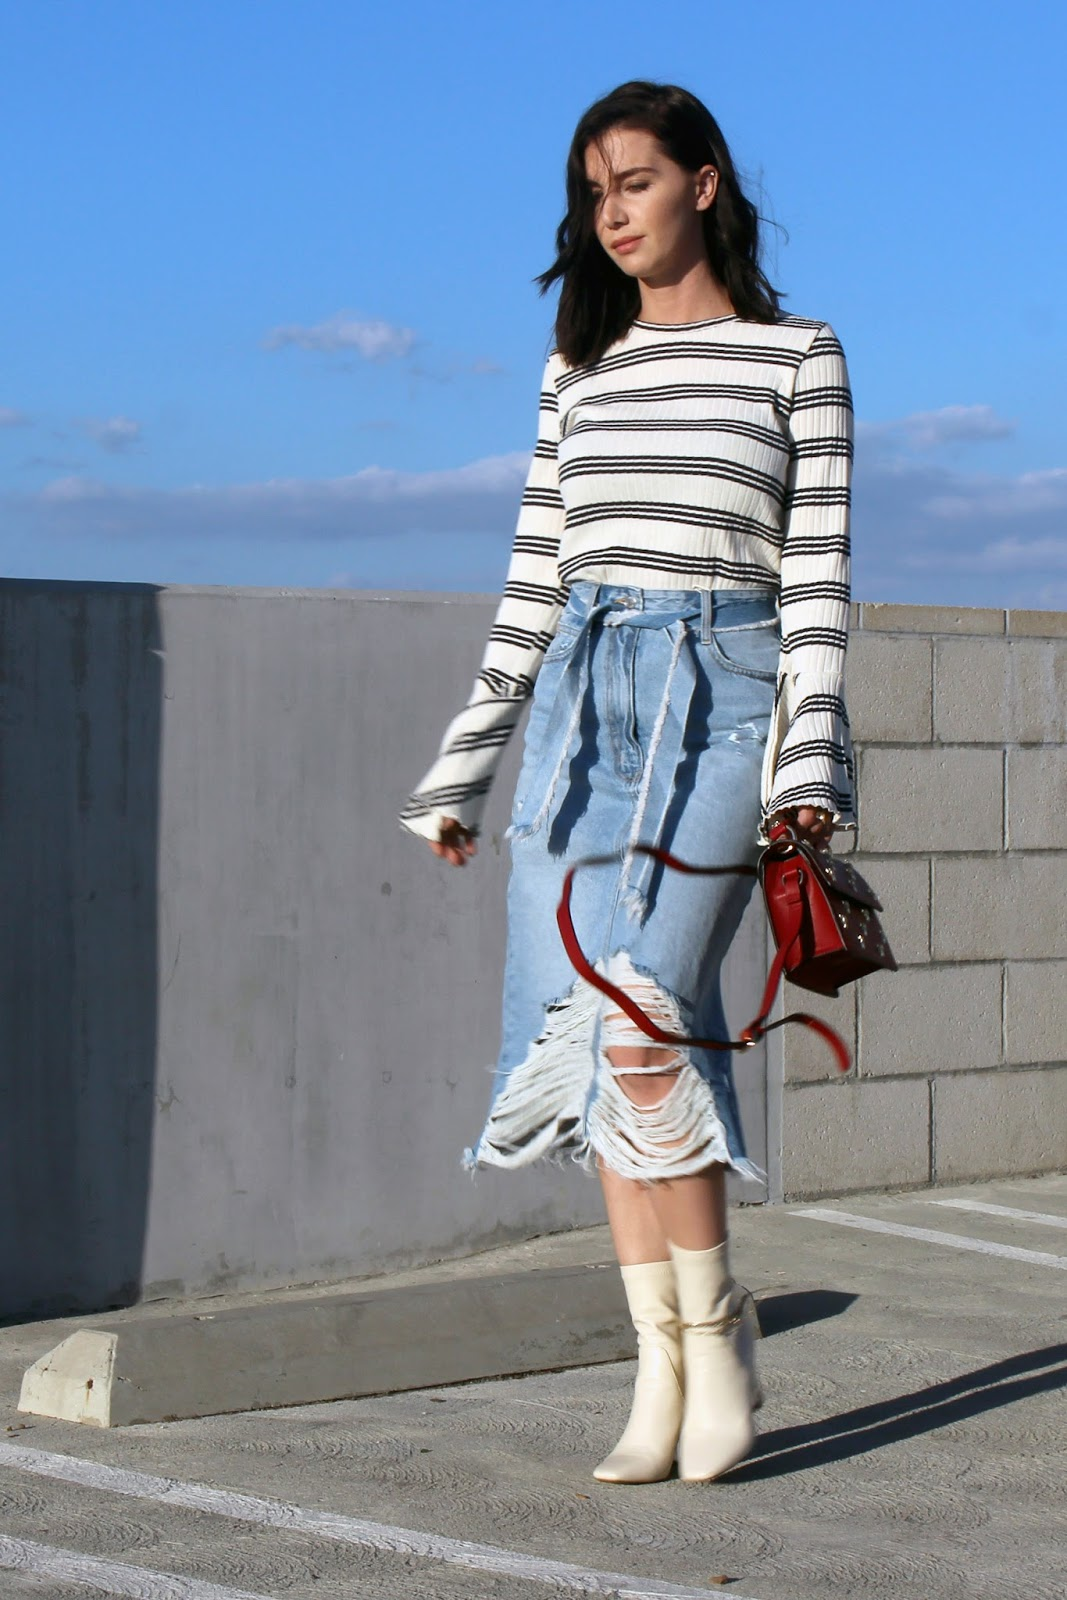 denim midi skirt, flared sleeve top, ankle boots,street style, fall 2016 trends